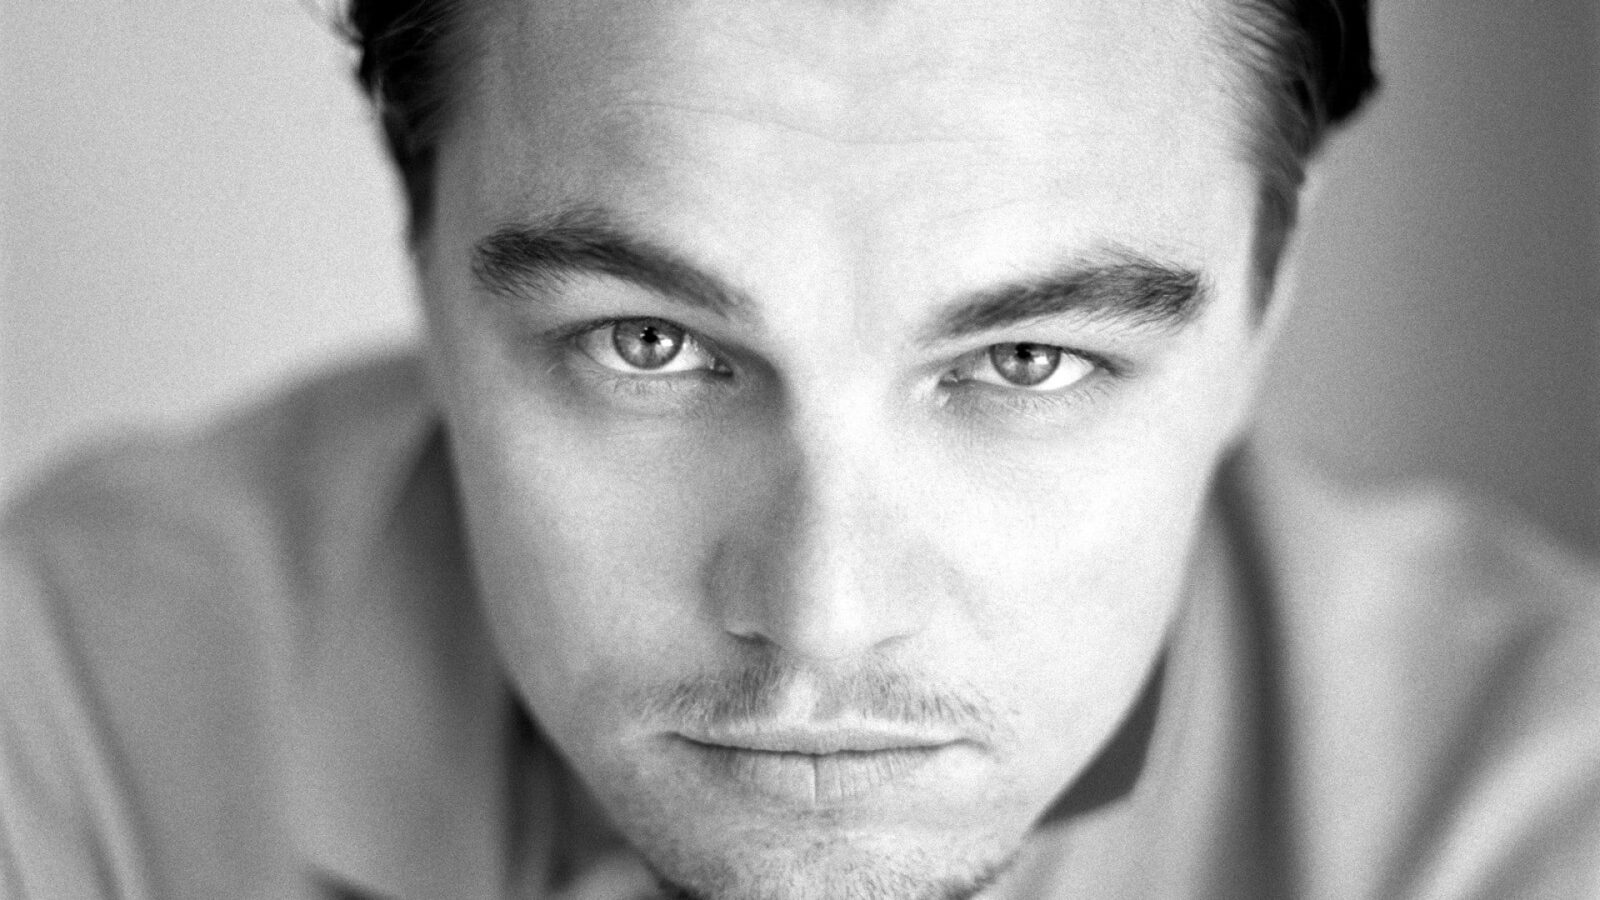 Anime Wallpapers Android Leonardo Dicaprio Hd Wallpapers Download